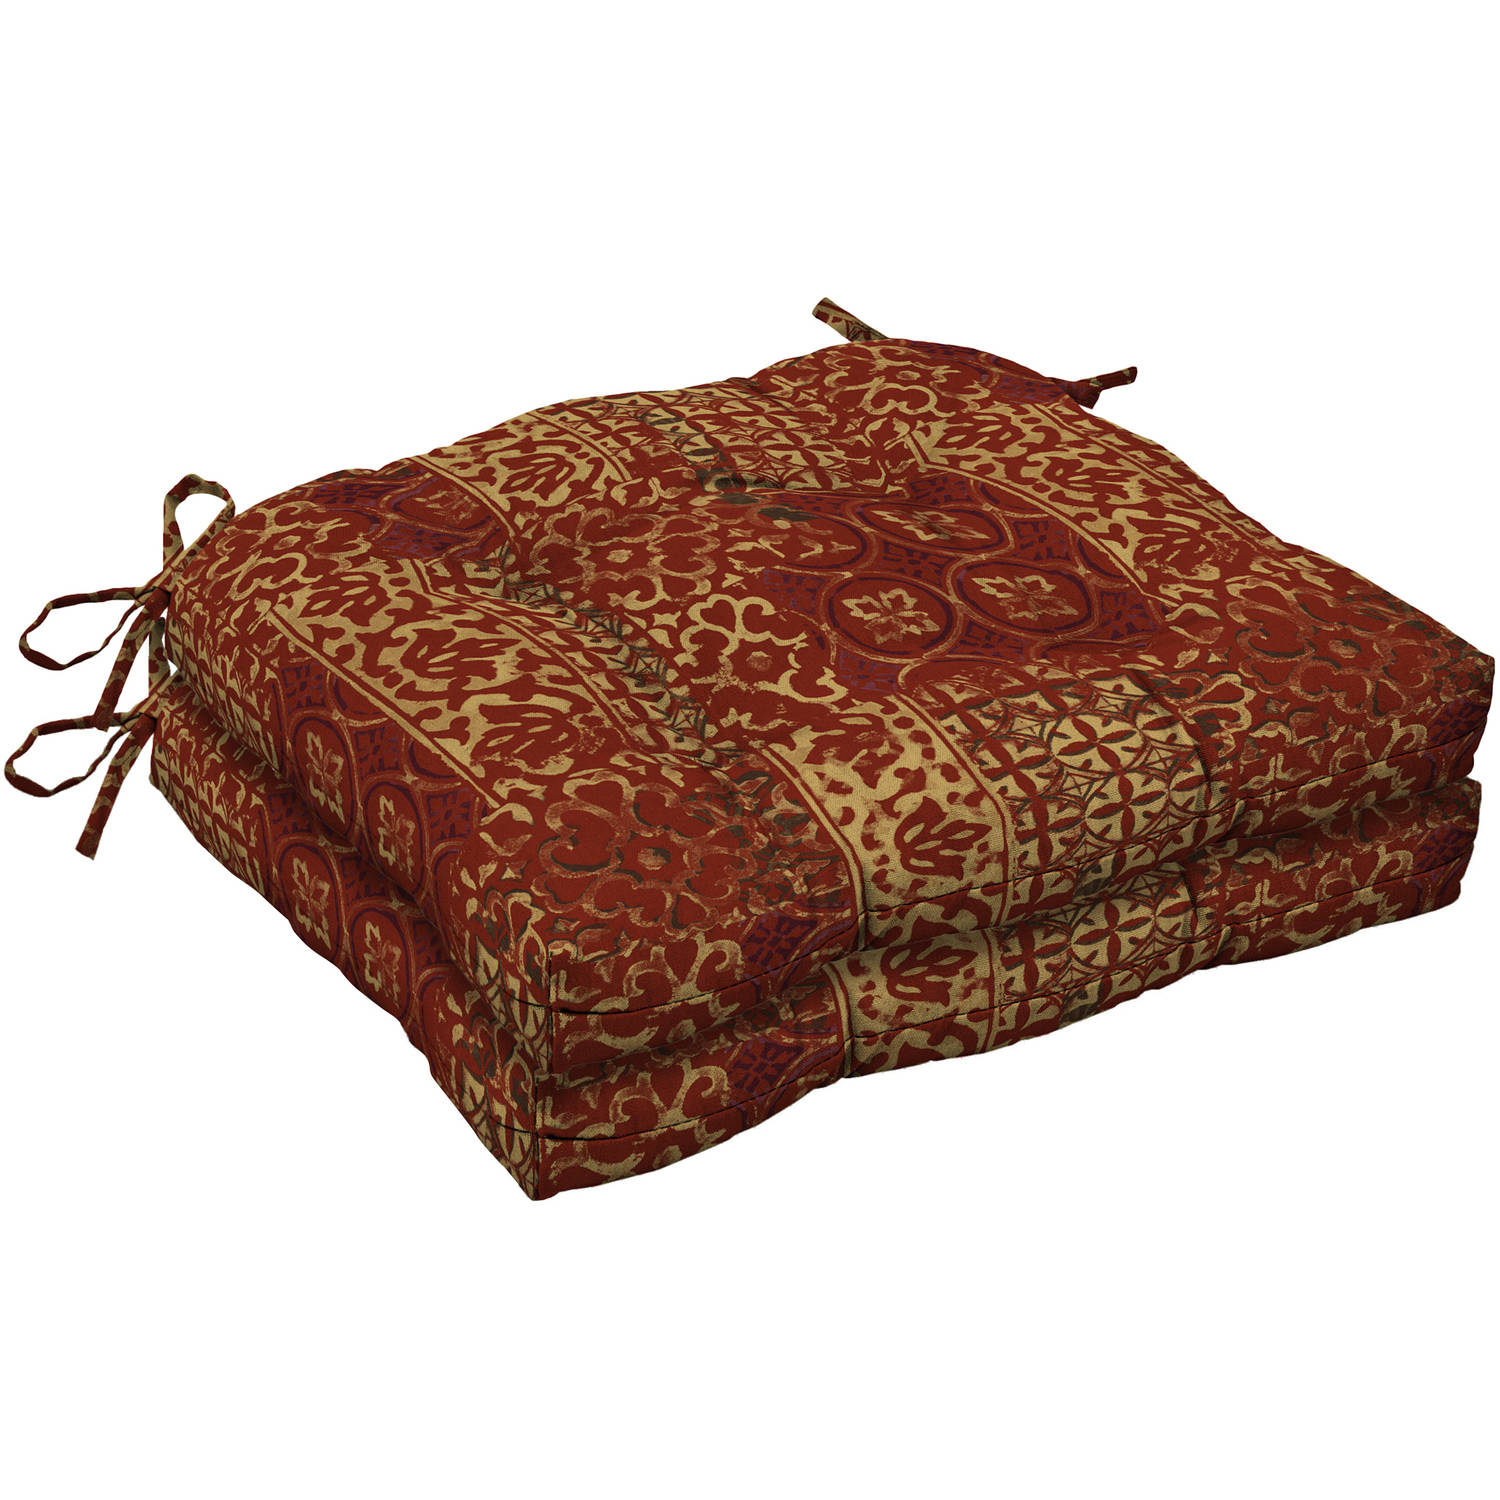 Mainstays Outdoor Patio Wicker Seat Cushion Set of 2